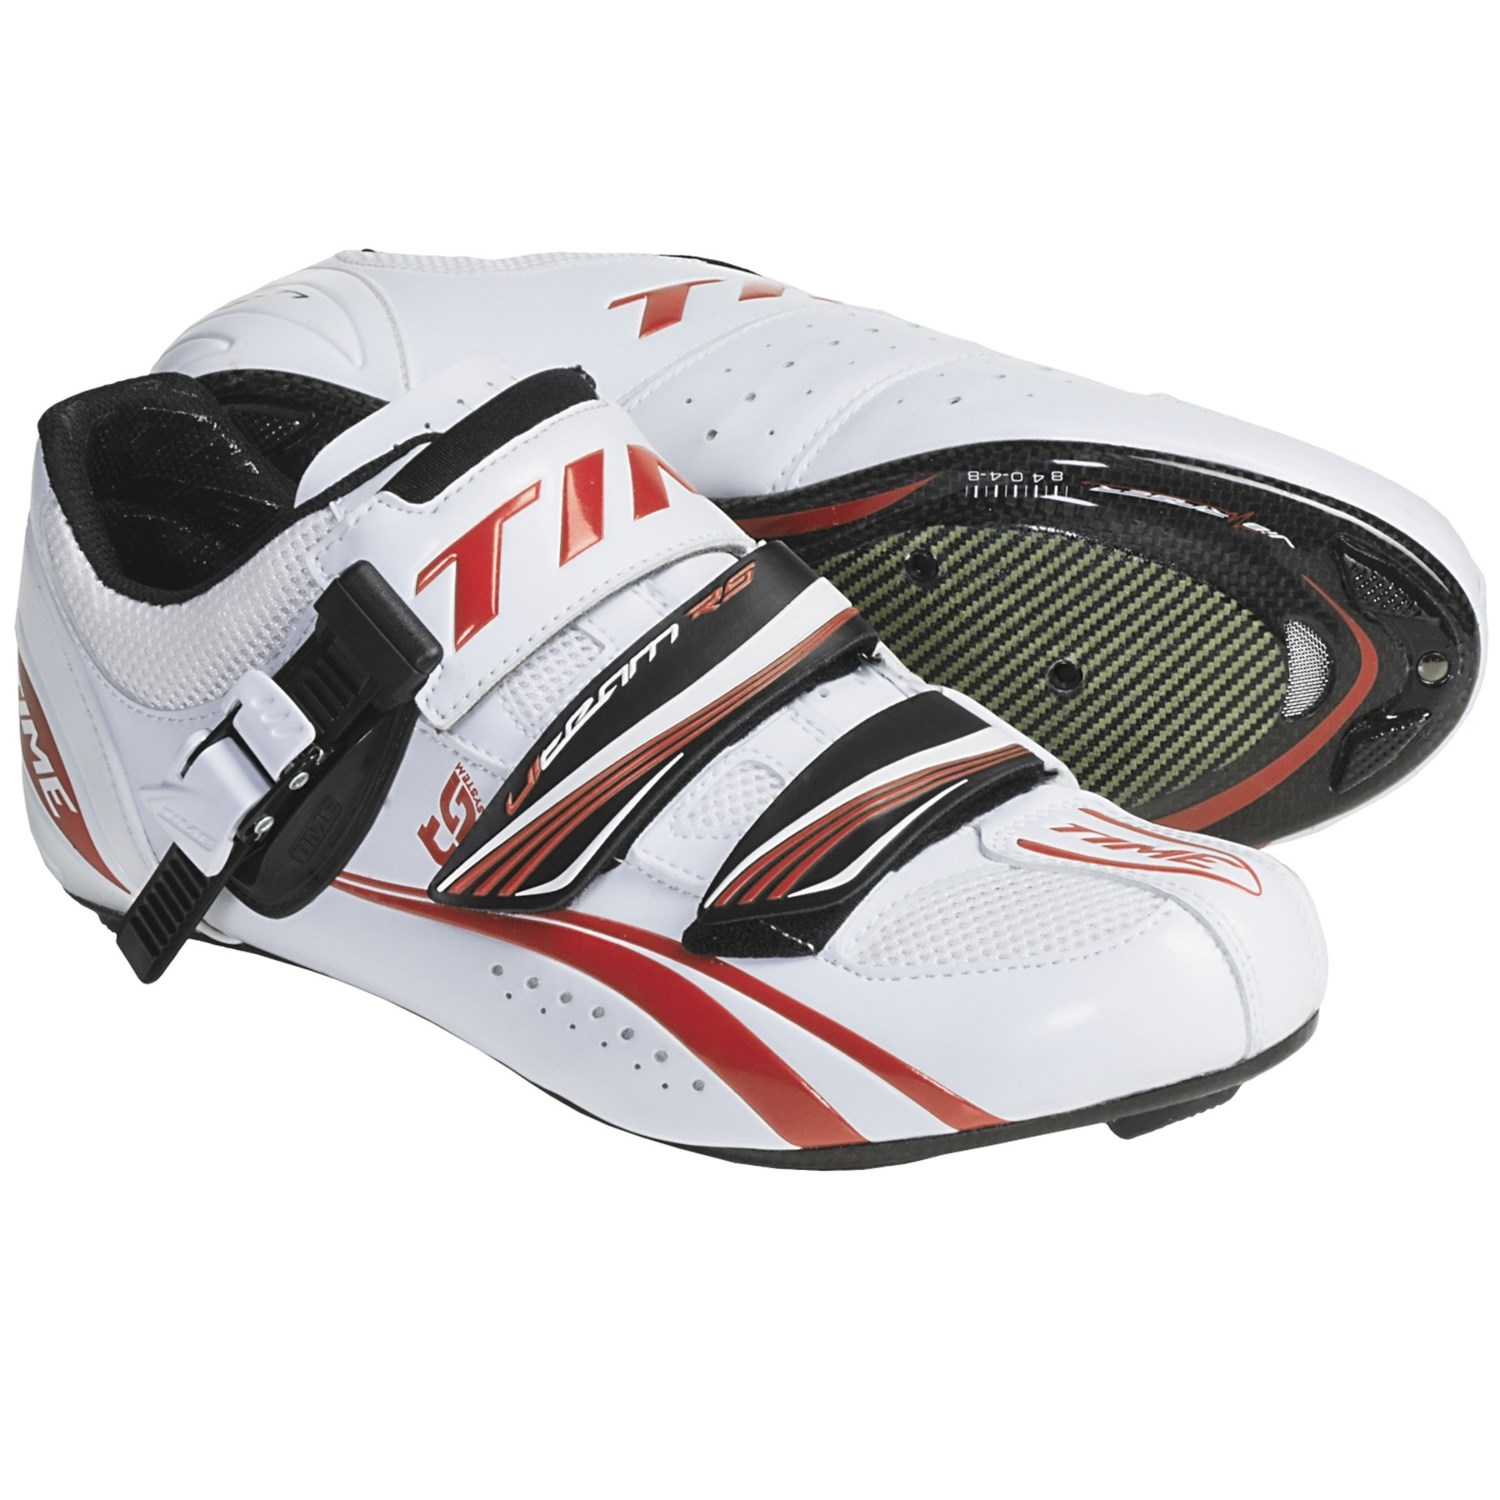 Looking for some women's cycle touring shoes